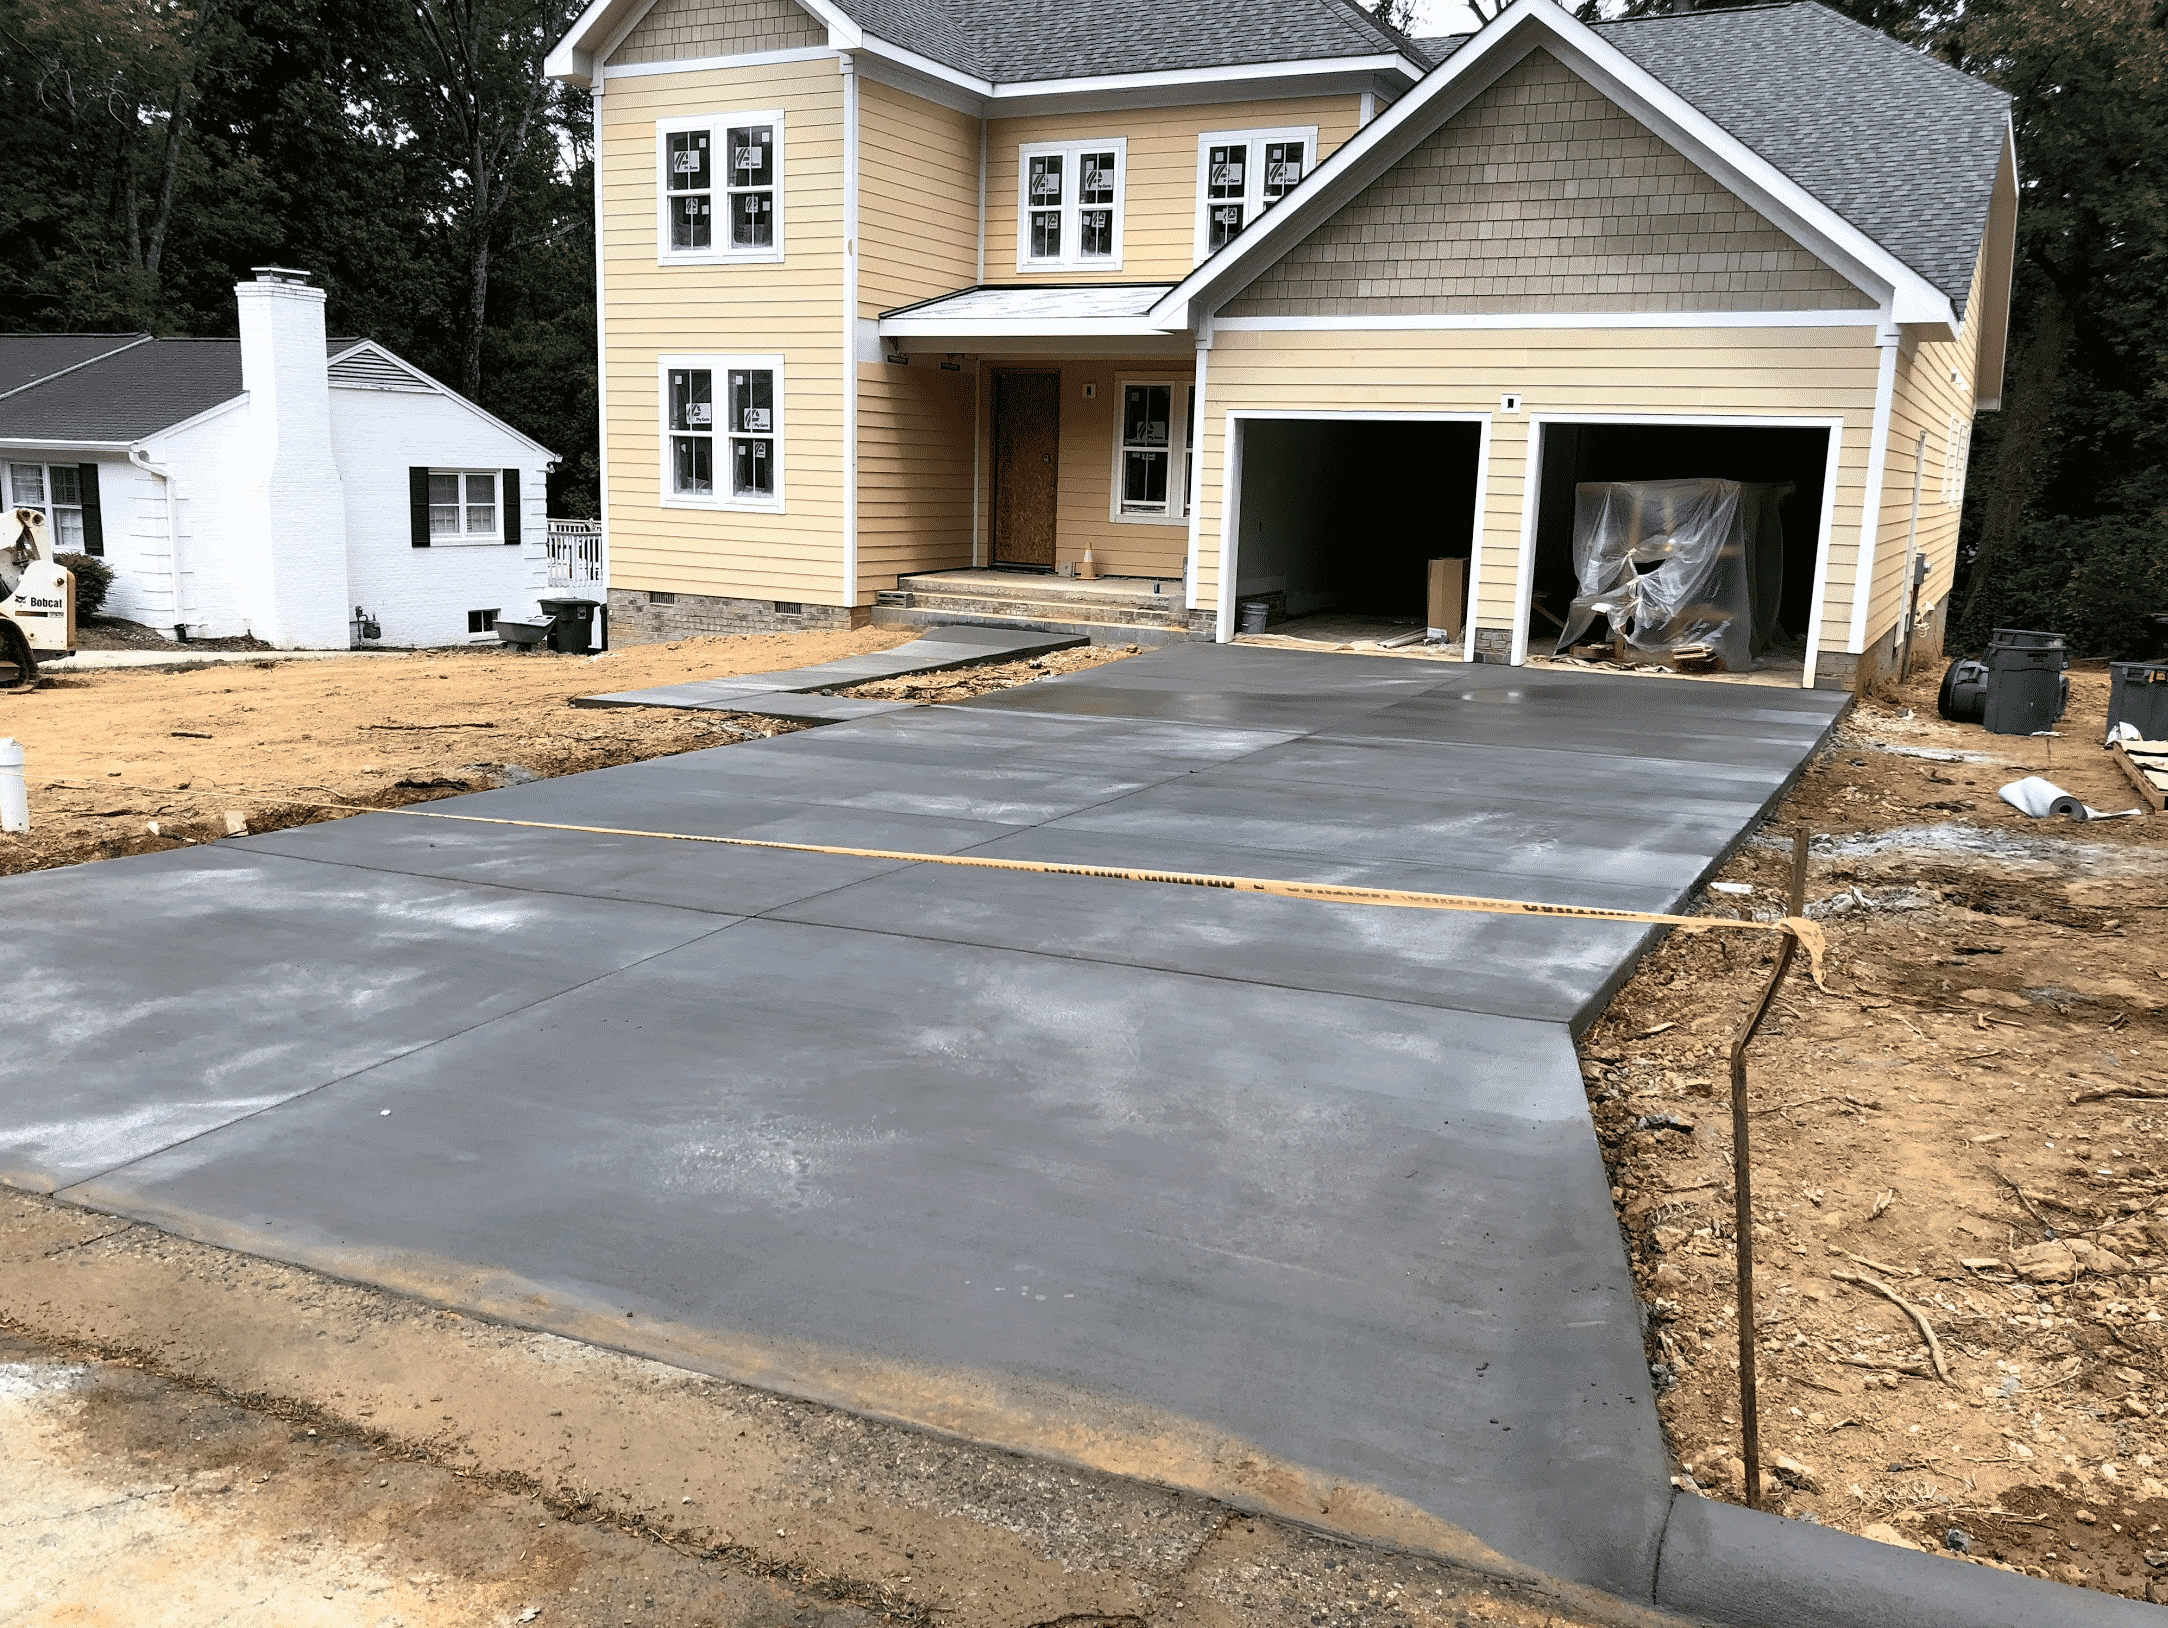 Concrete Driveway and Yellow House